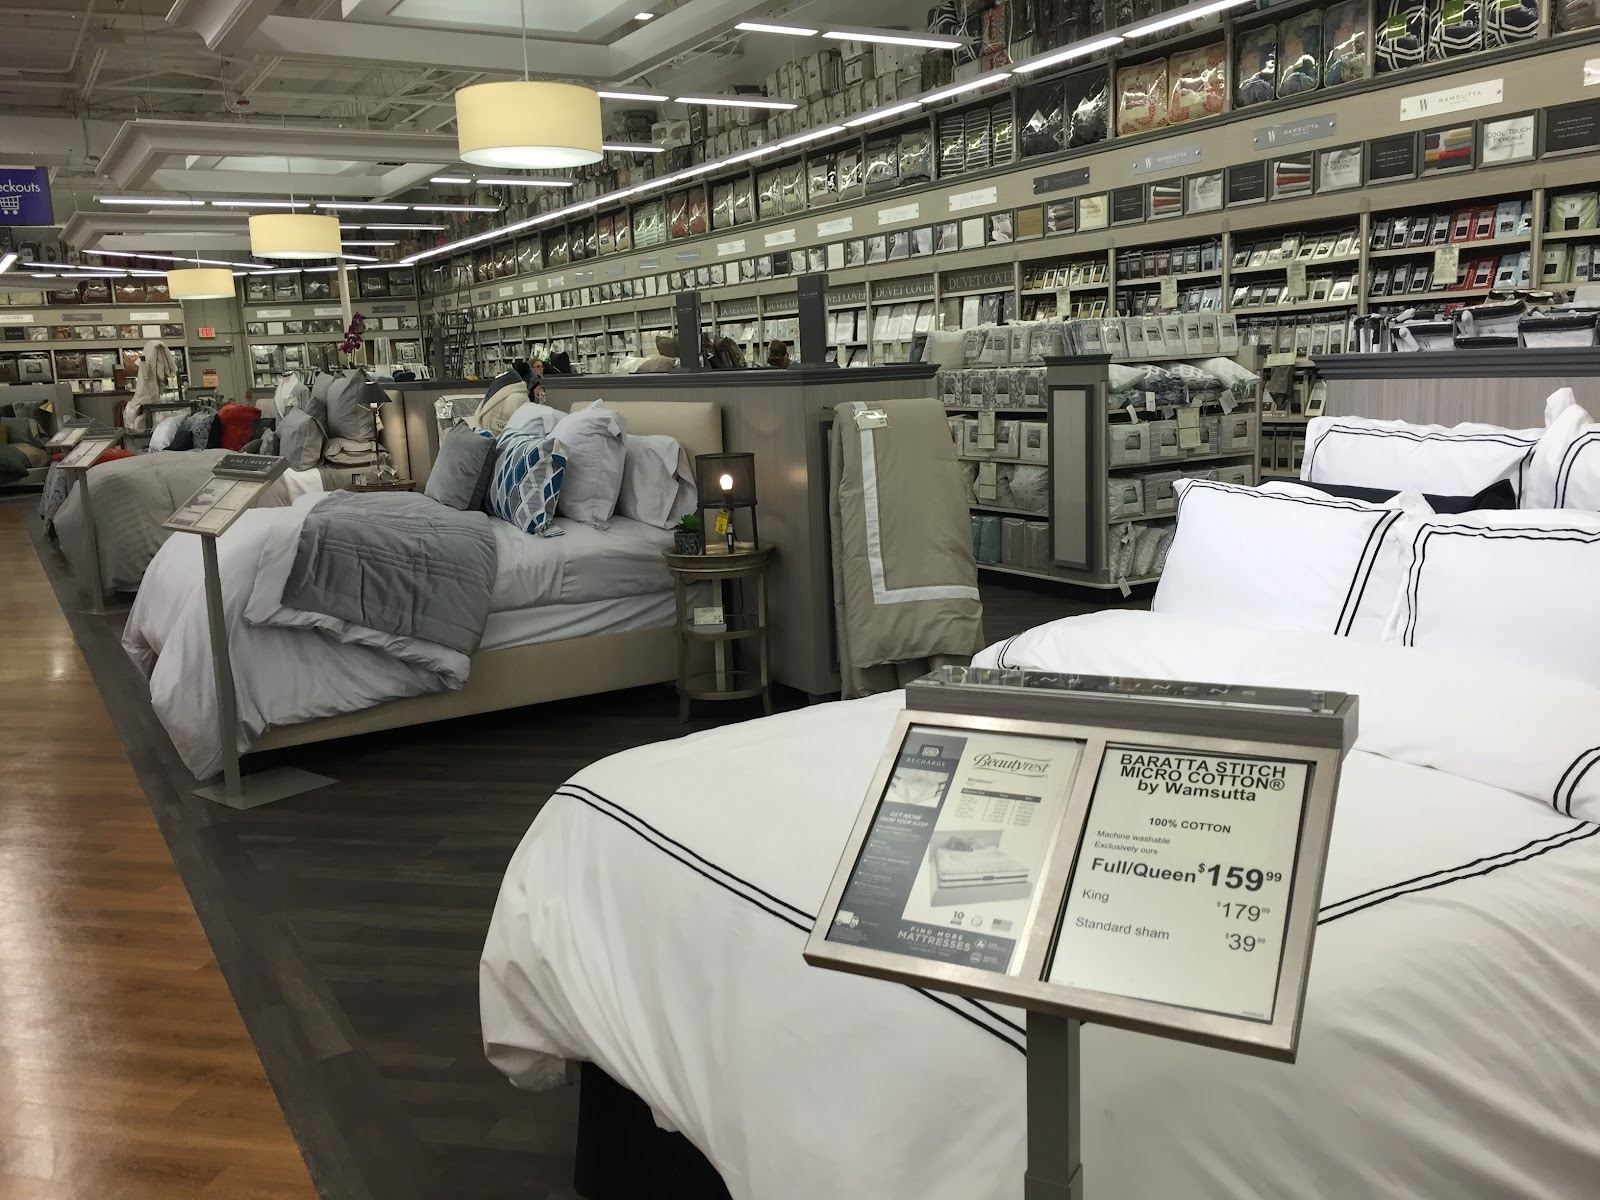 A New Look for Bed, Bath, and Beyond?